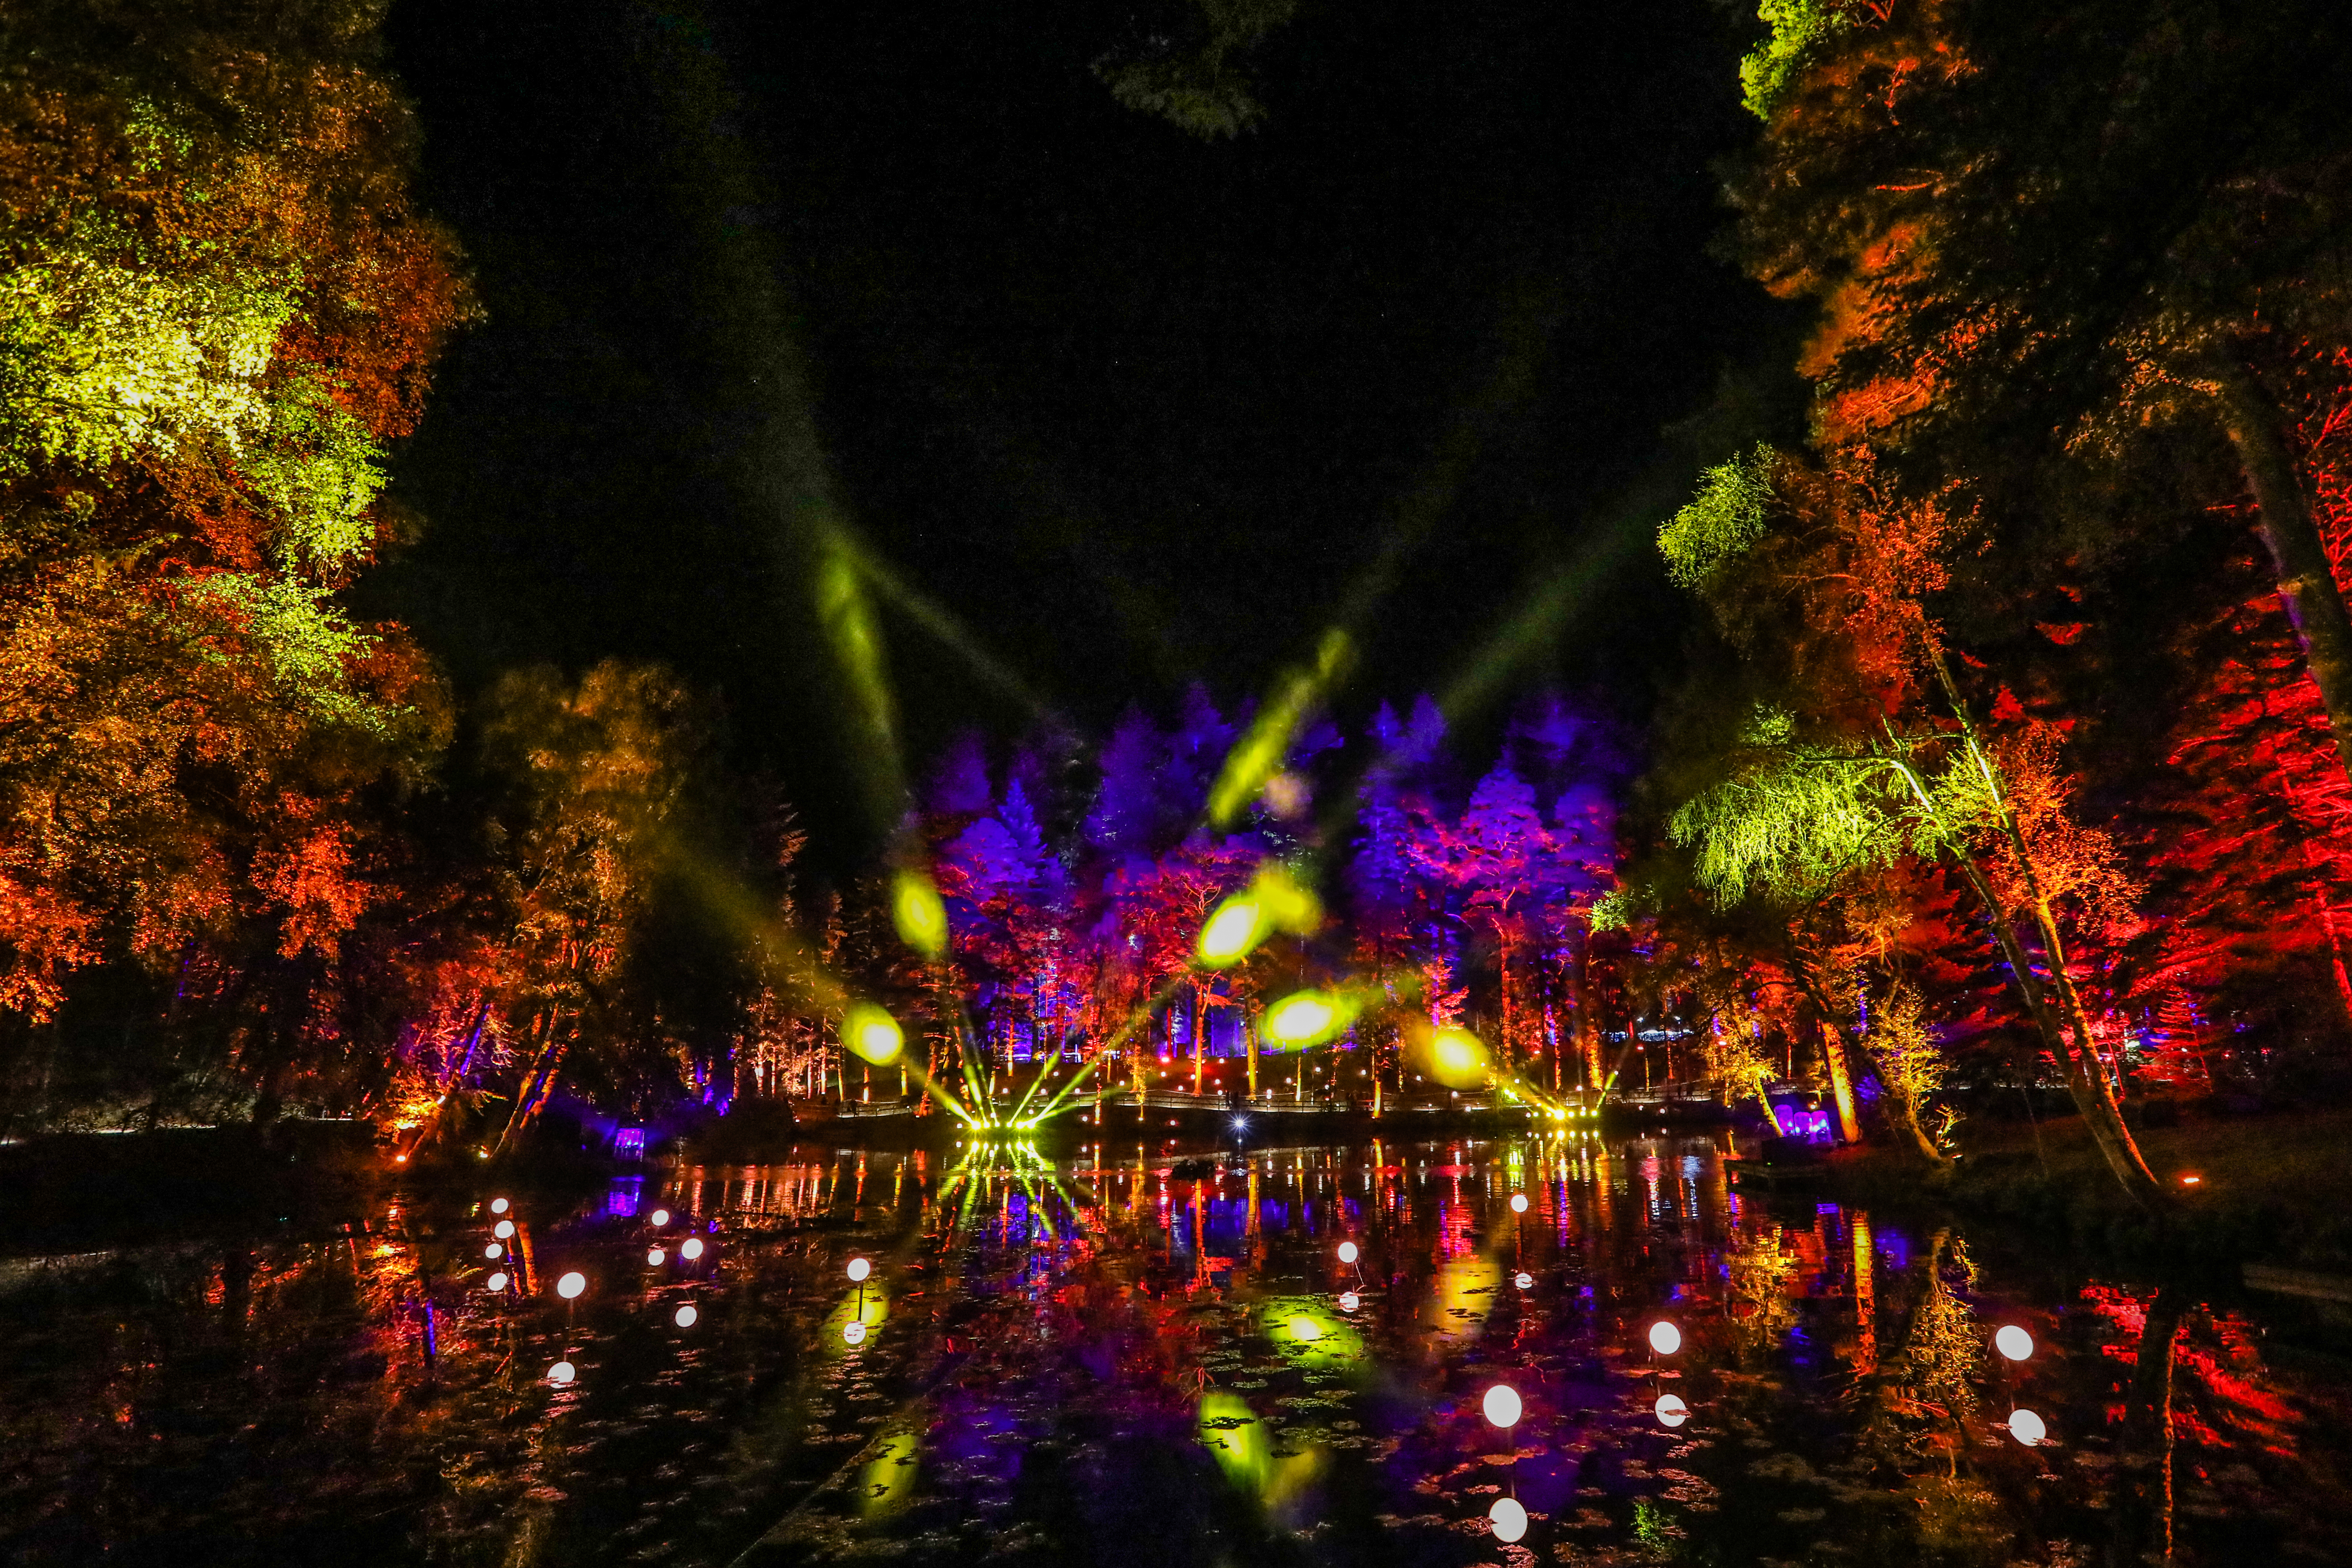 The Enchanted Forest event went ahead, despite the power cut.